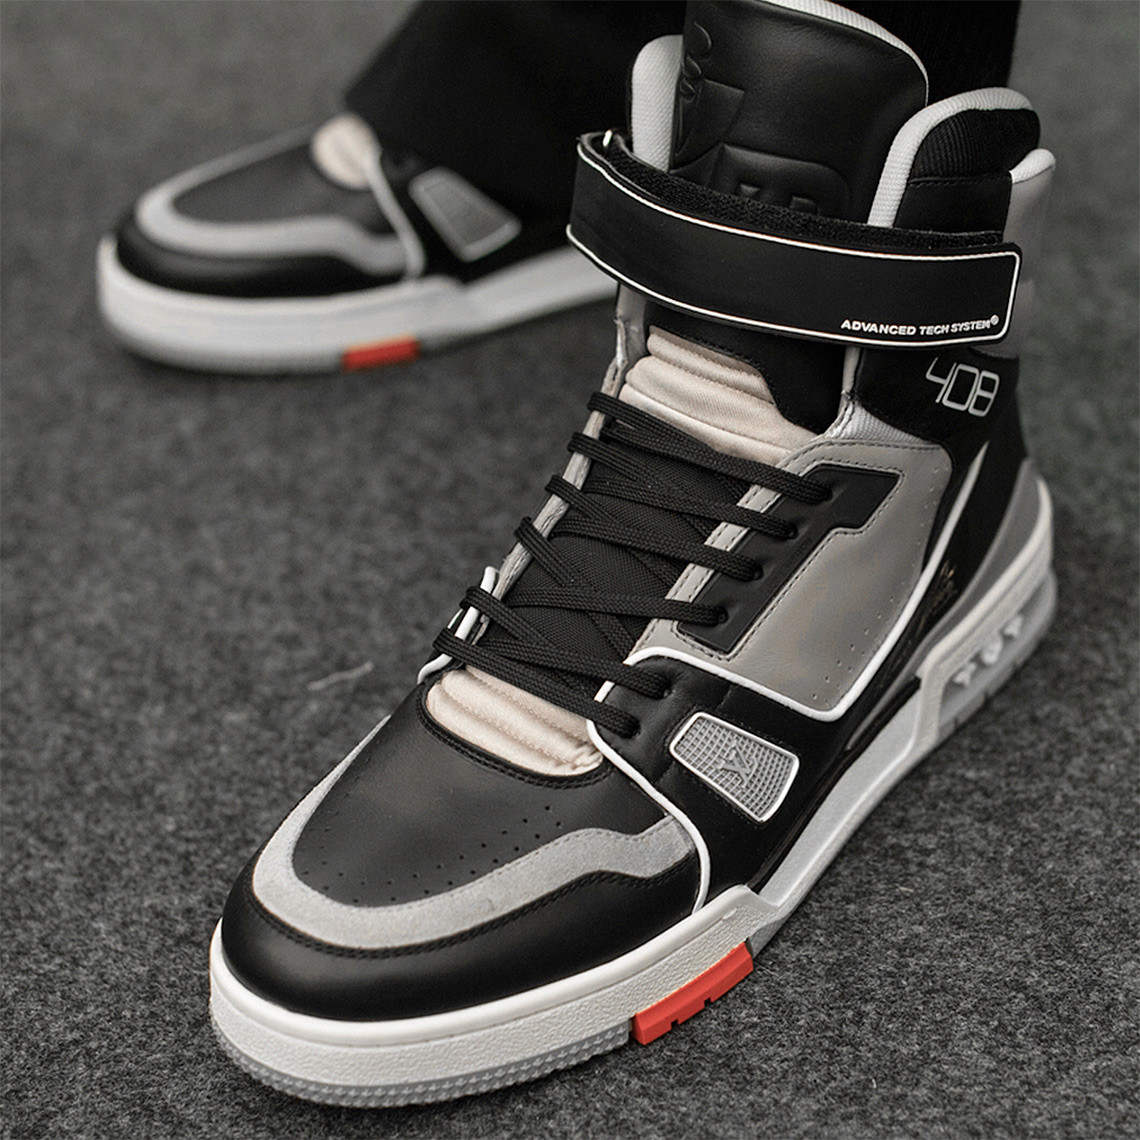 buy online ce8f0 ad7c4 THE FIRST SNEAKER DESIGNED BY VIRGIL ABLOH HAS FINALLY BEEN ...